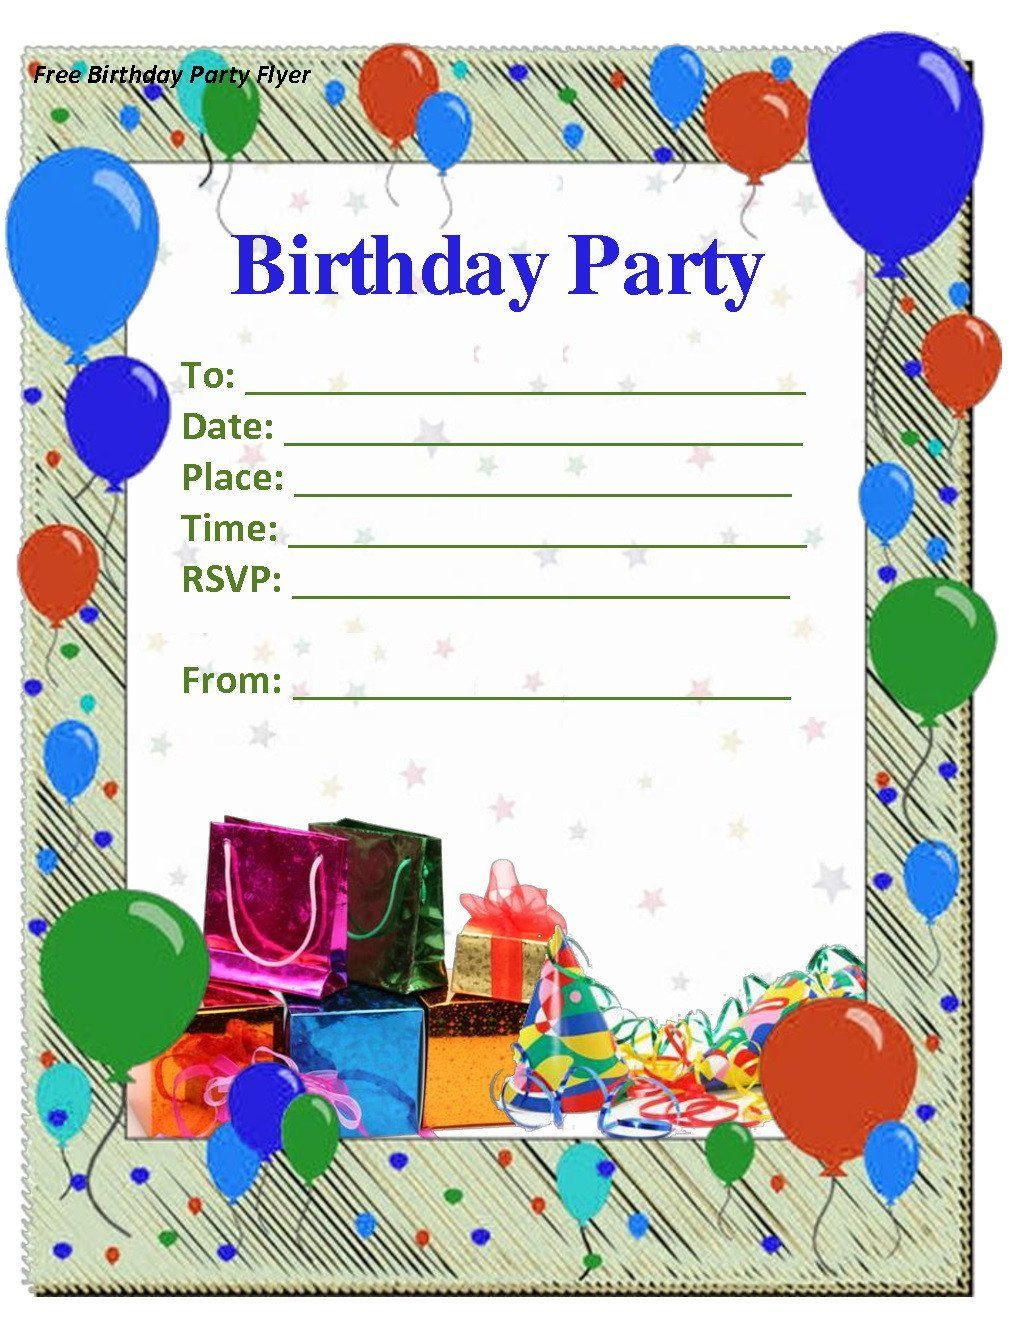 Printable Birthday Invitation Cards Elegant Kulasara 5 New Party